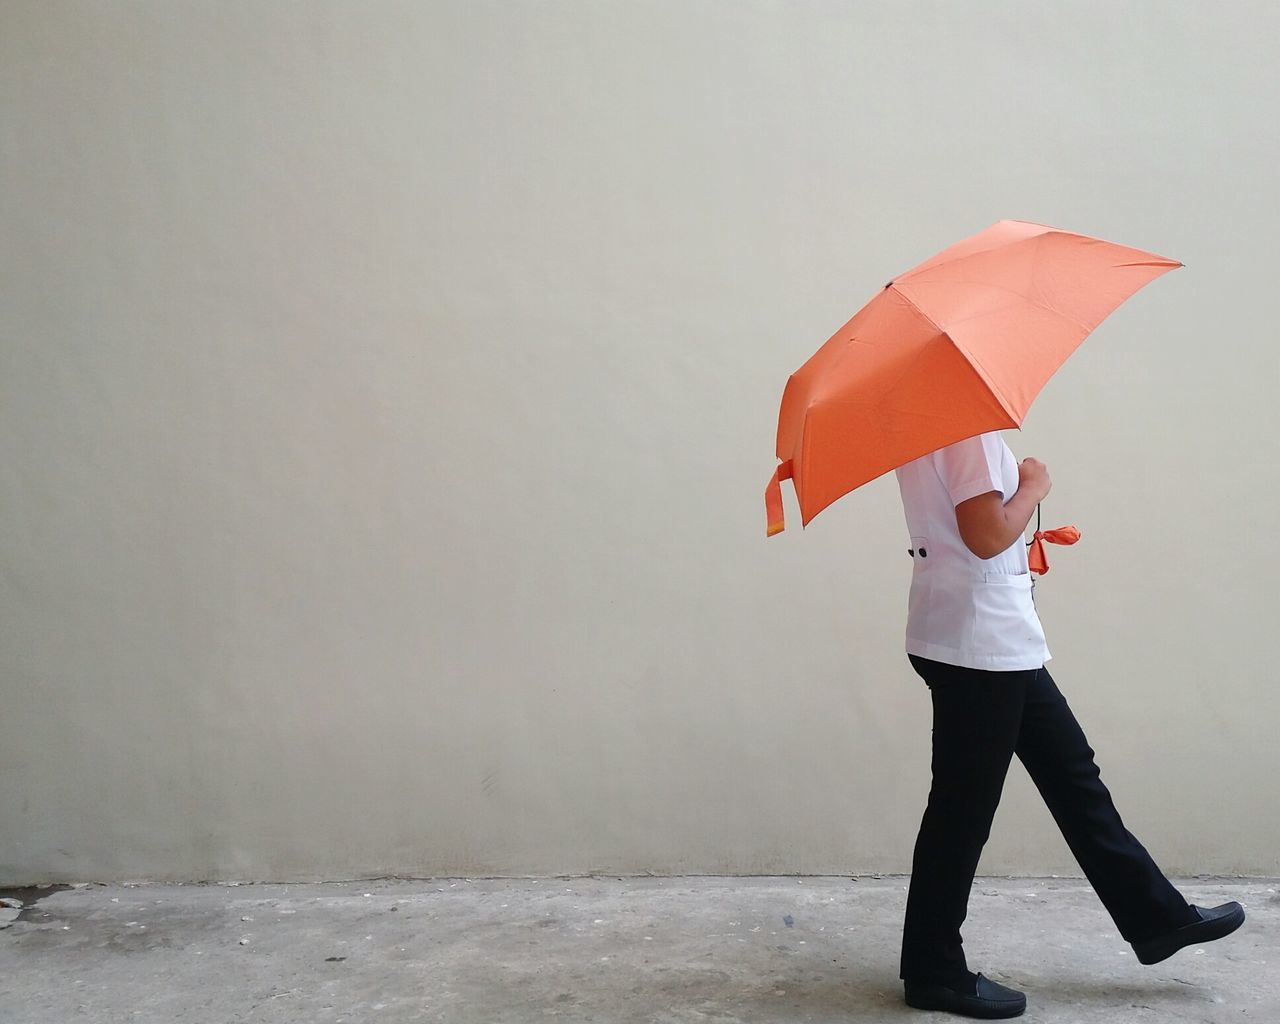 Ms. Mysterious. Umbrella Holding Protection Full Length Lifestyles Walking Casual Clothing Water Person Red Day Tranquility Orange Lights And Shadows EyeEm Best Shots Eyeem Philippines EyeEm Samsung Galaxy Camera Philippines Filipina